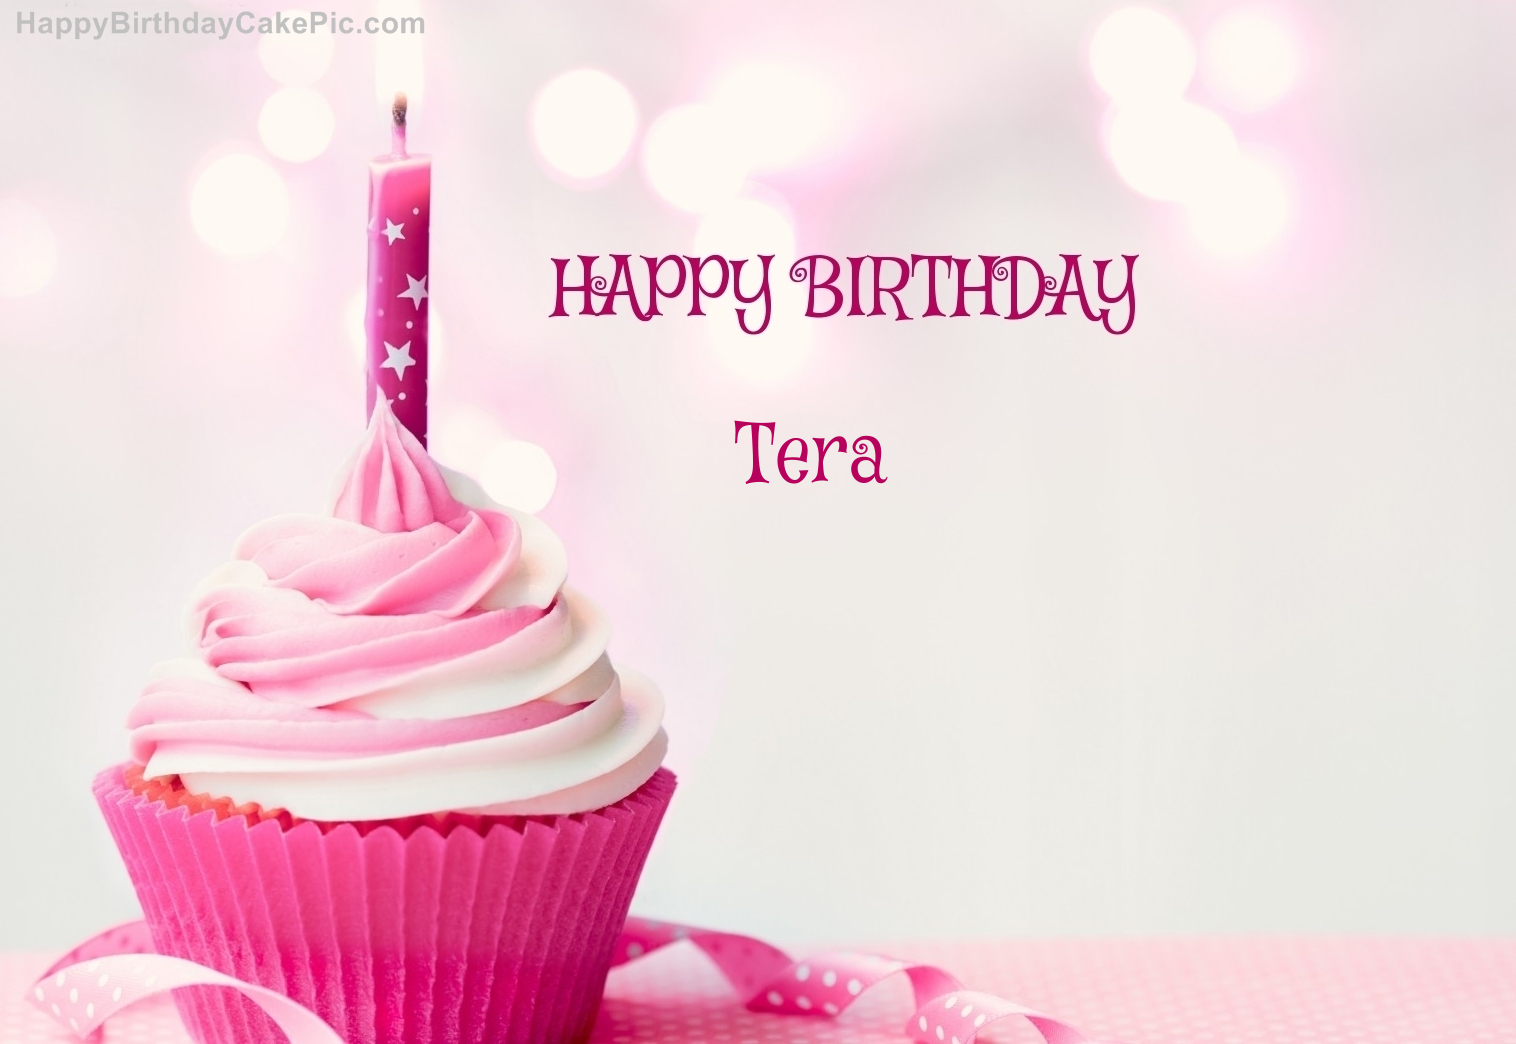 Happy Birthday Cupcake Candle Pink Cake For Tera